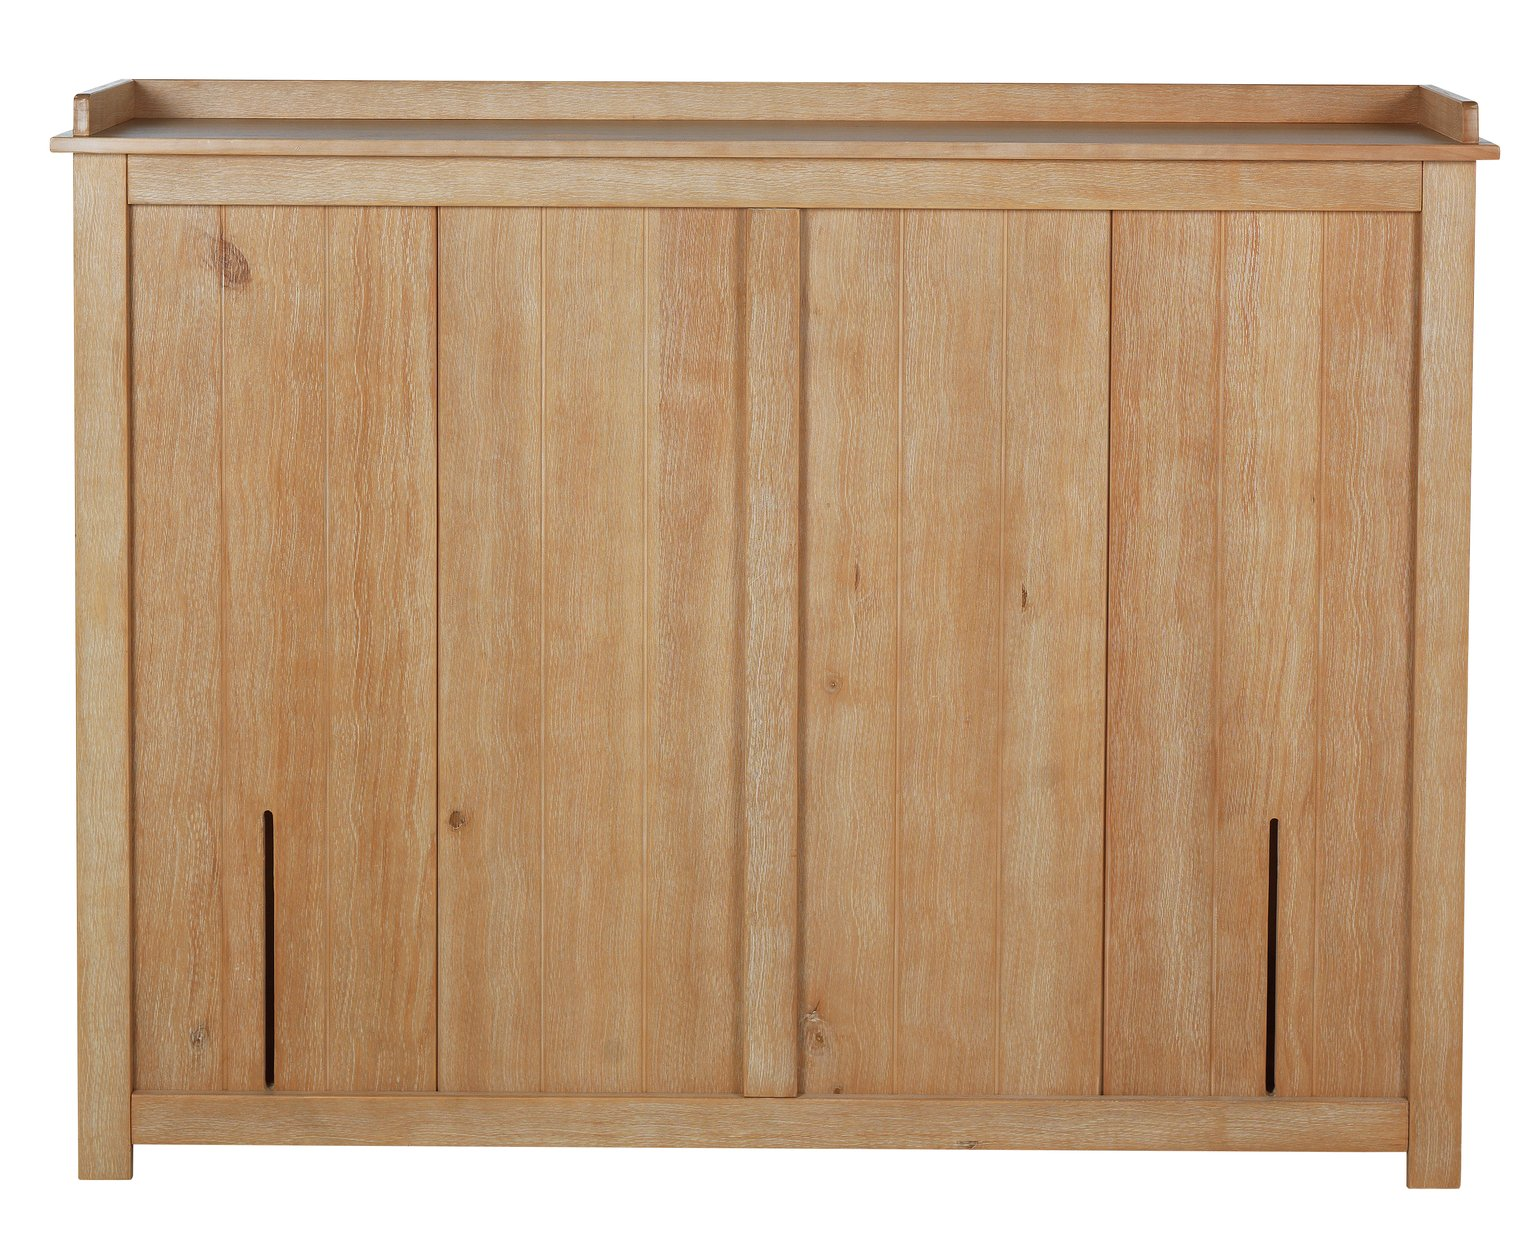 Argos Home Crusoe Kingsize Storage Headboard - Pine